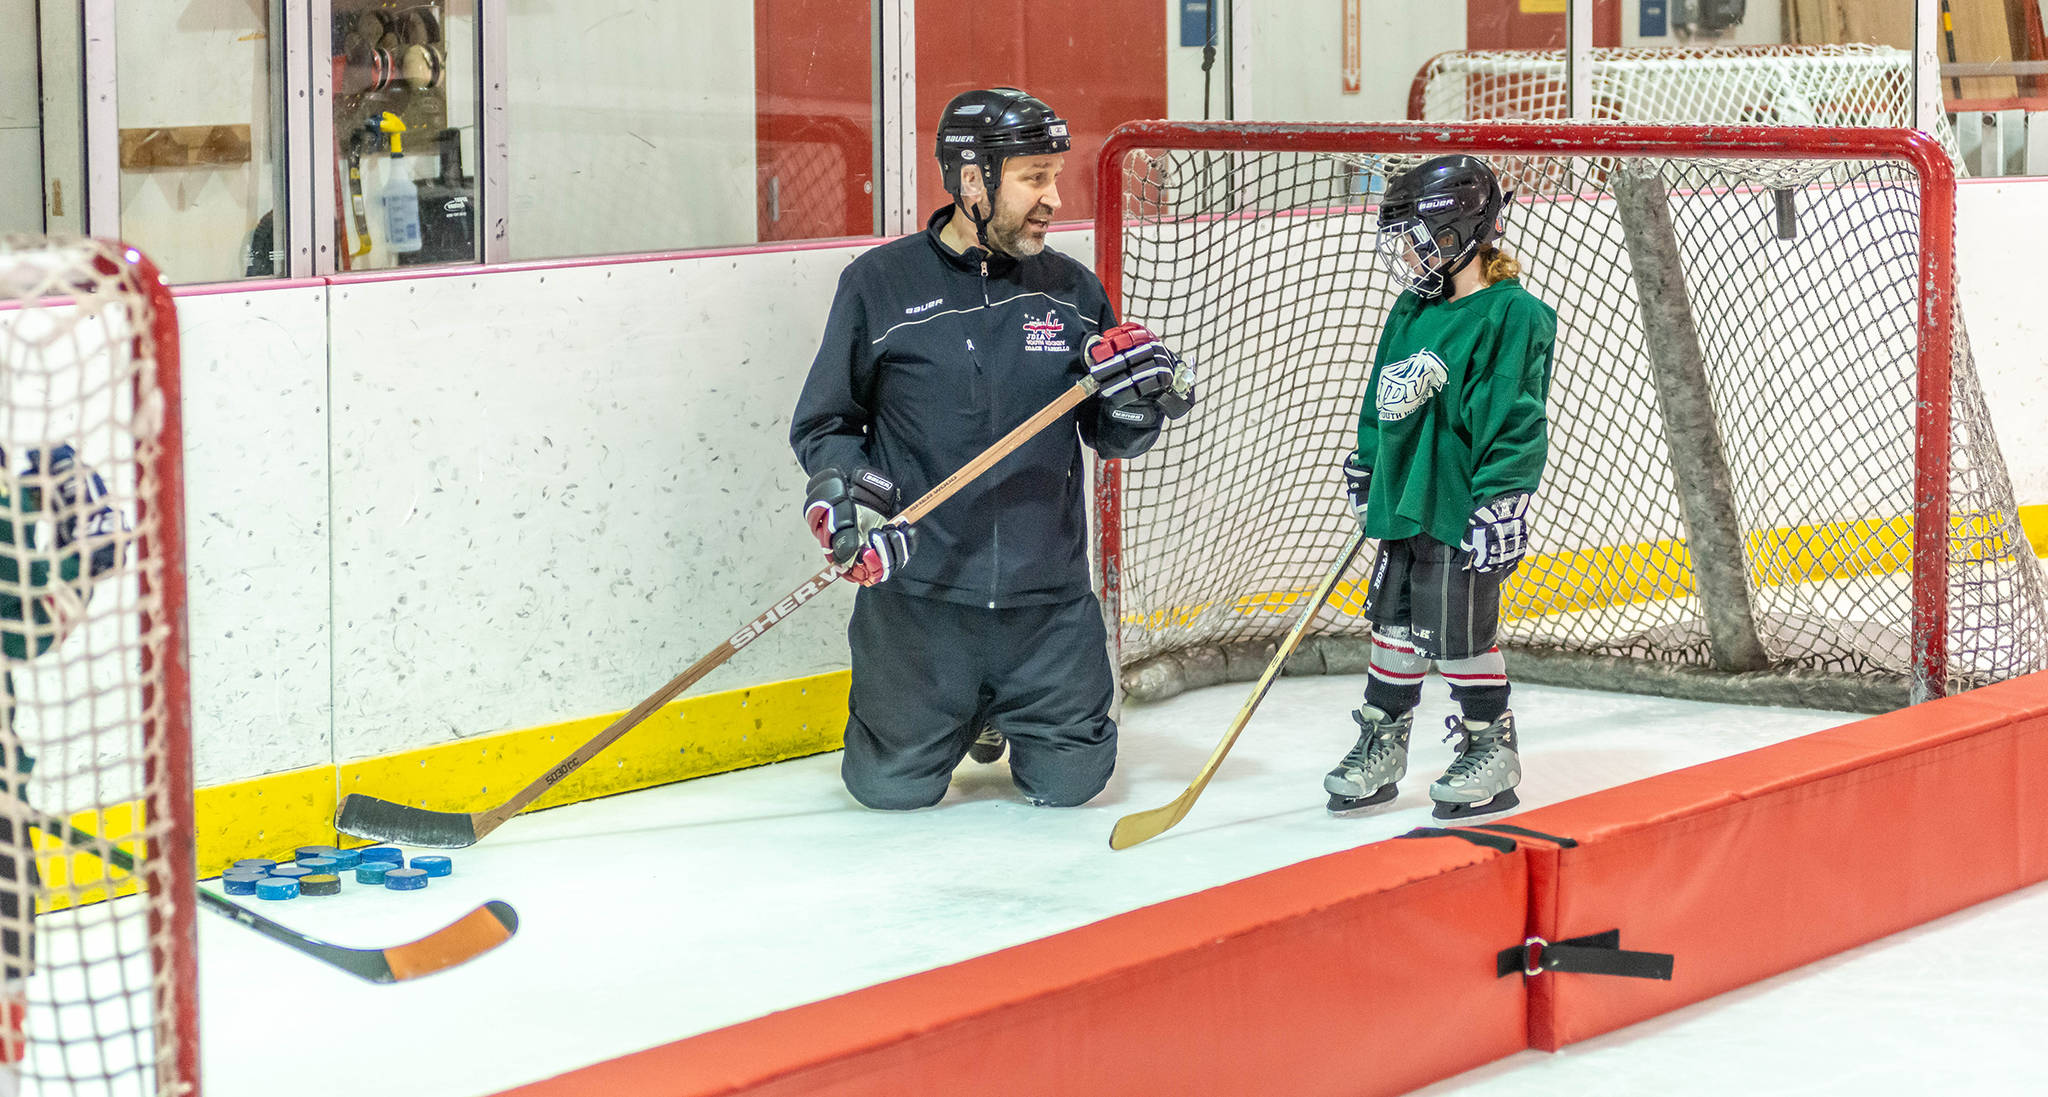 Coach Dan Fabrello shoots a quick smile at a JDIA youth player during a recent practice at Treadwell Ice Arena. (Courtesy Photo | Steve Quinn)